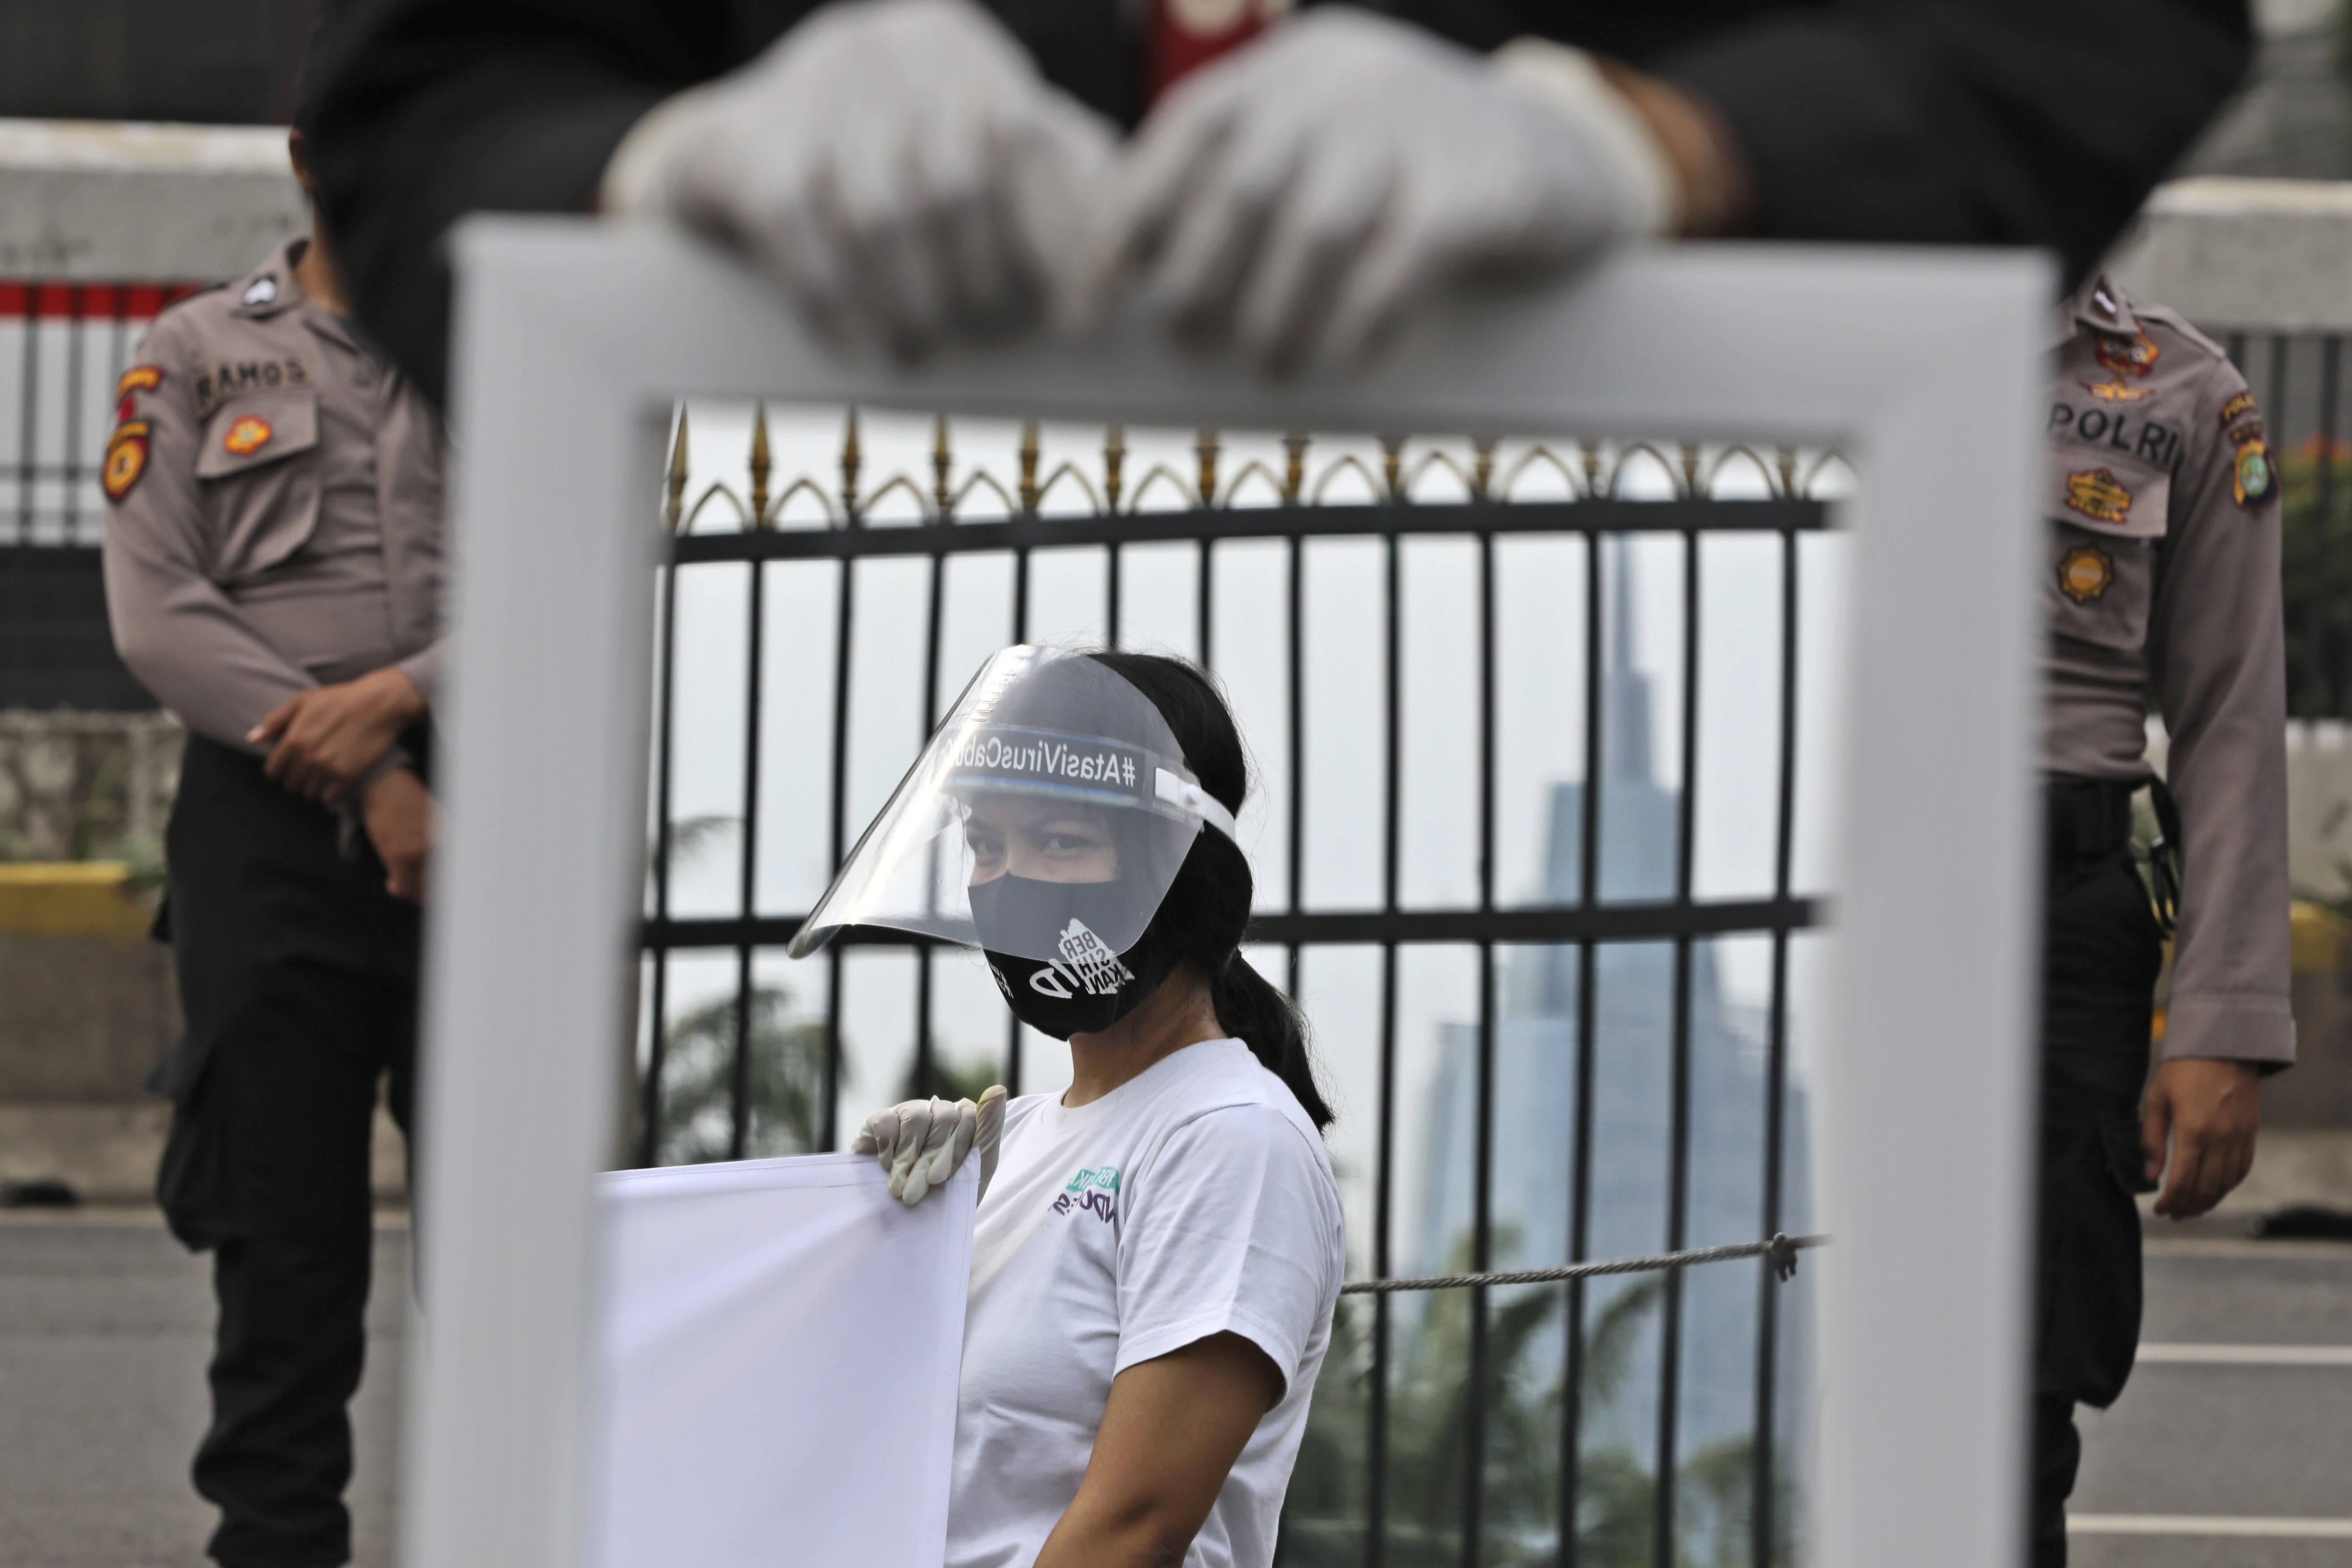 A mirror reflects the image of an activist wearing a mask and protective face shield as a precaution against the new coronavirus outbreak during a small protest outside the parliament in Jakarta, Indonesia, Tuesday, July 14, 2020. About a dozen activists staged the protest opposing the government's omnibus bill on job creation that was intended to boost economic growth and create jobs, saying that it undermined labor rights and environmental protection. (AP Photo/Dita Alangkara)